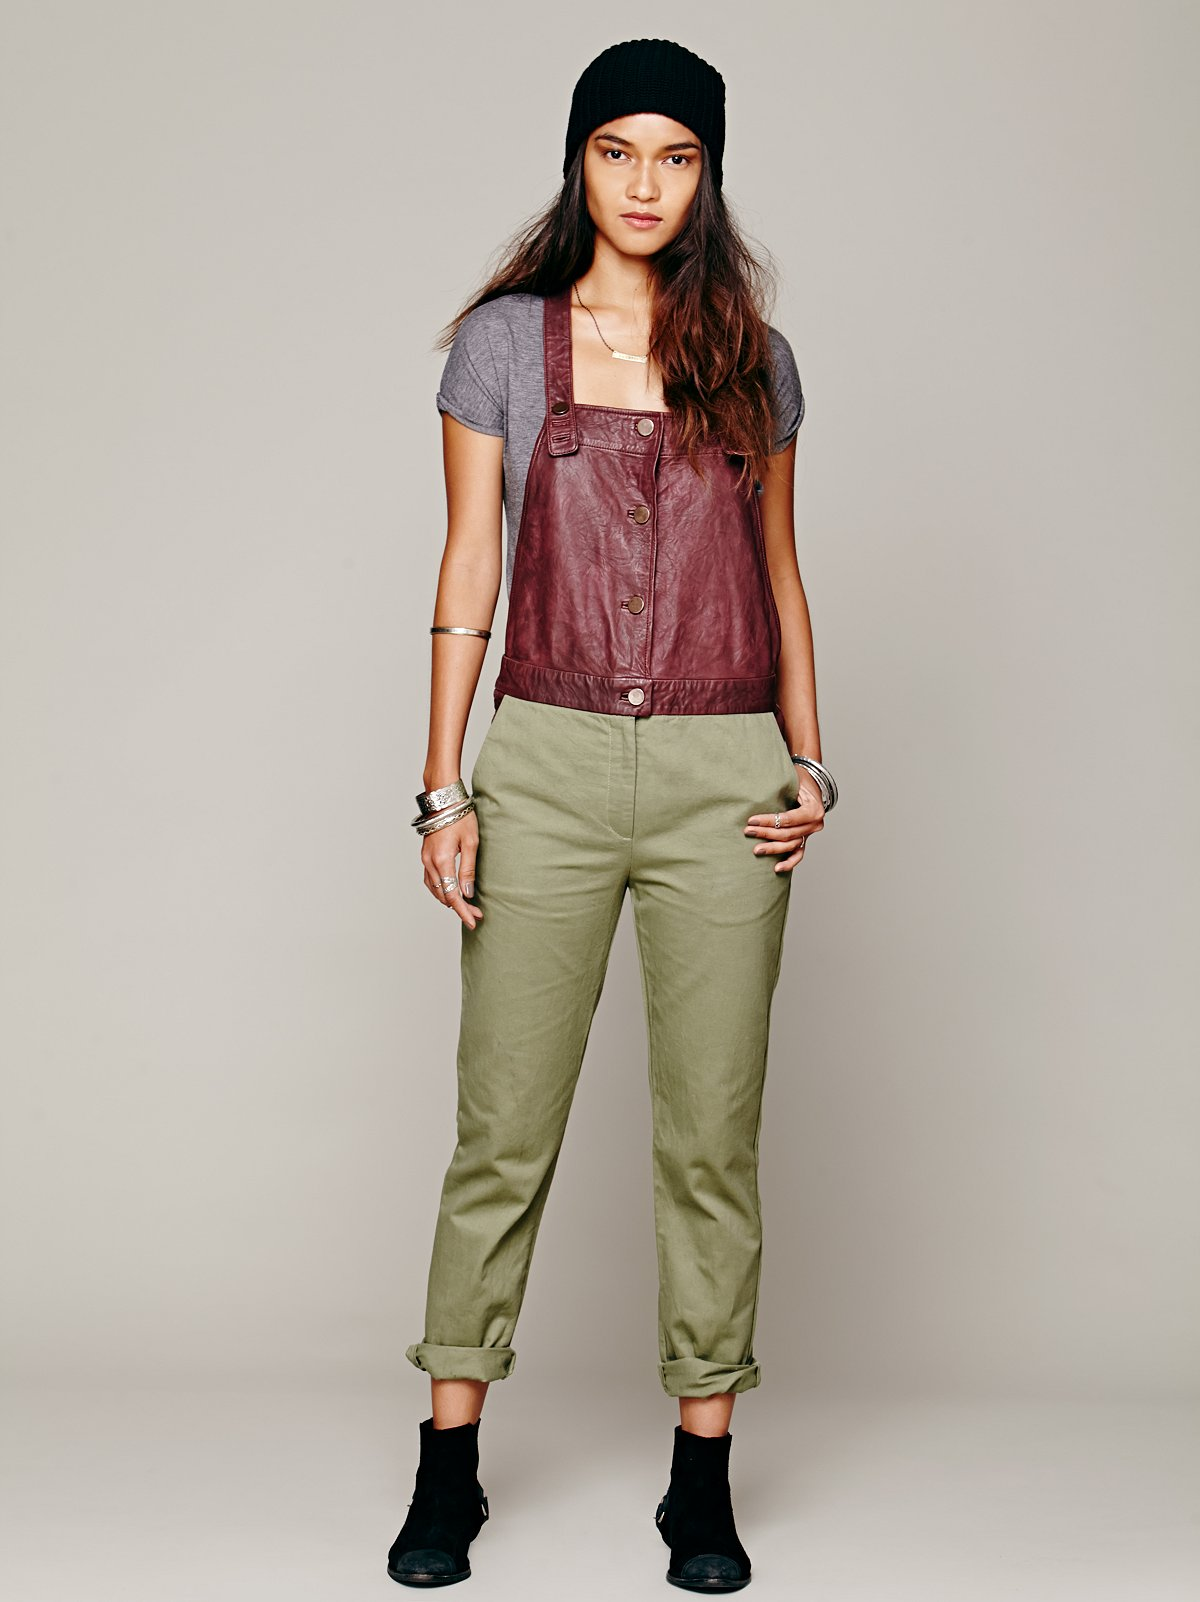 Emory Leather Overall